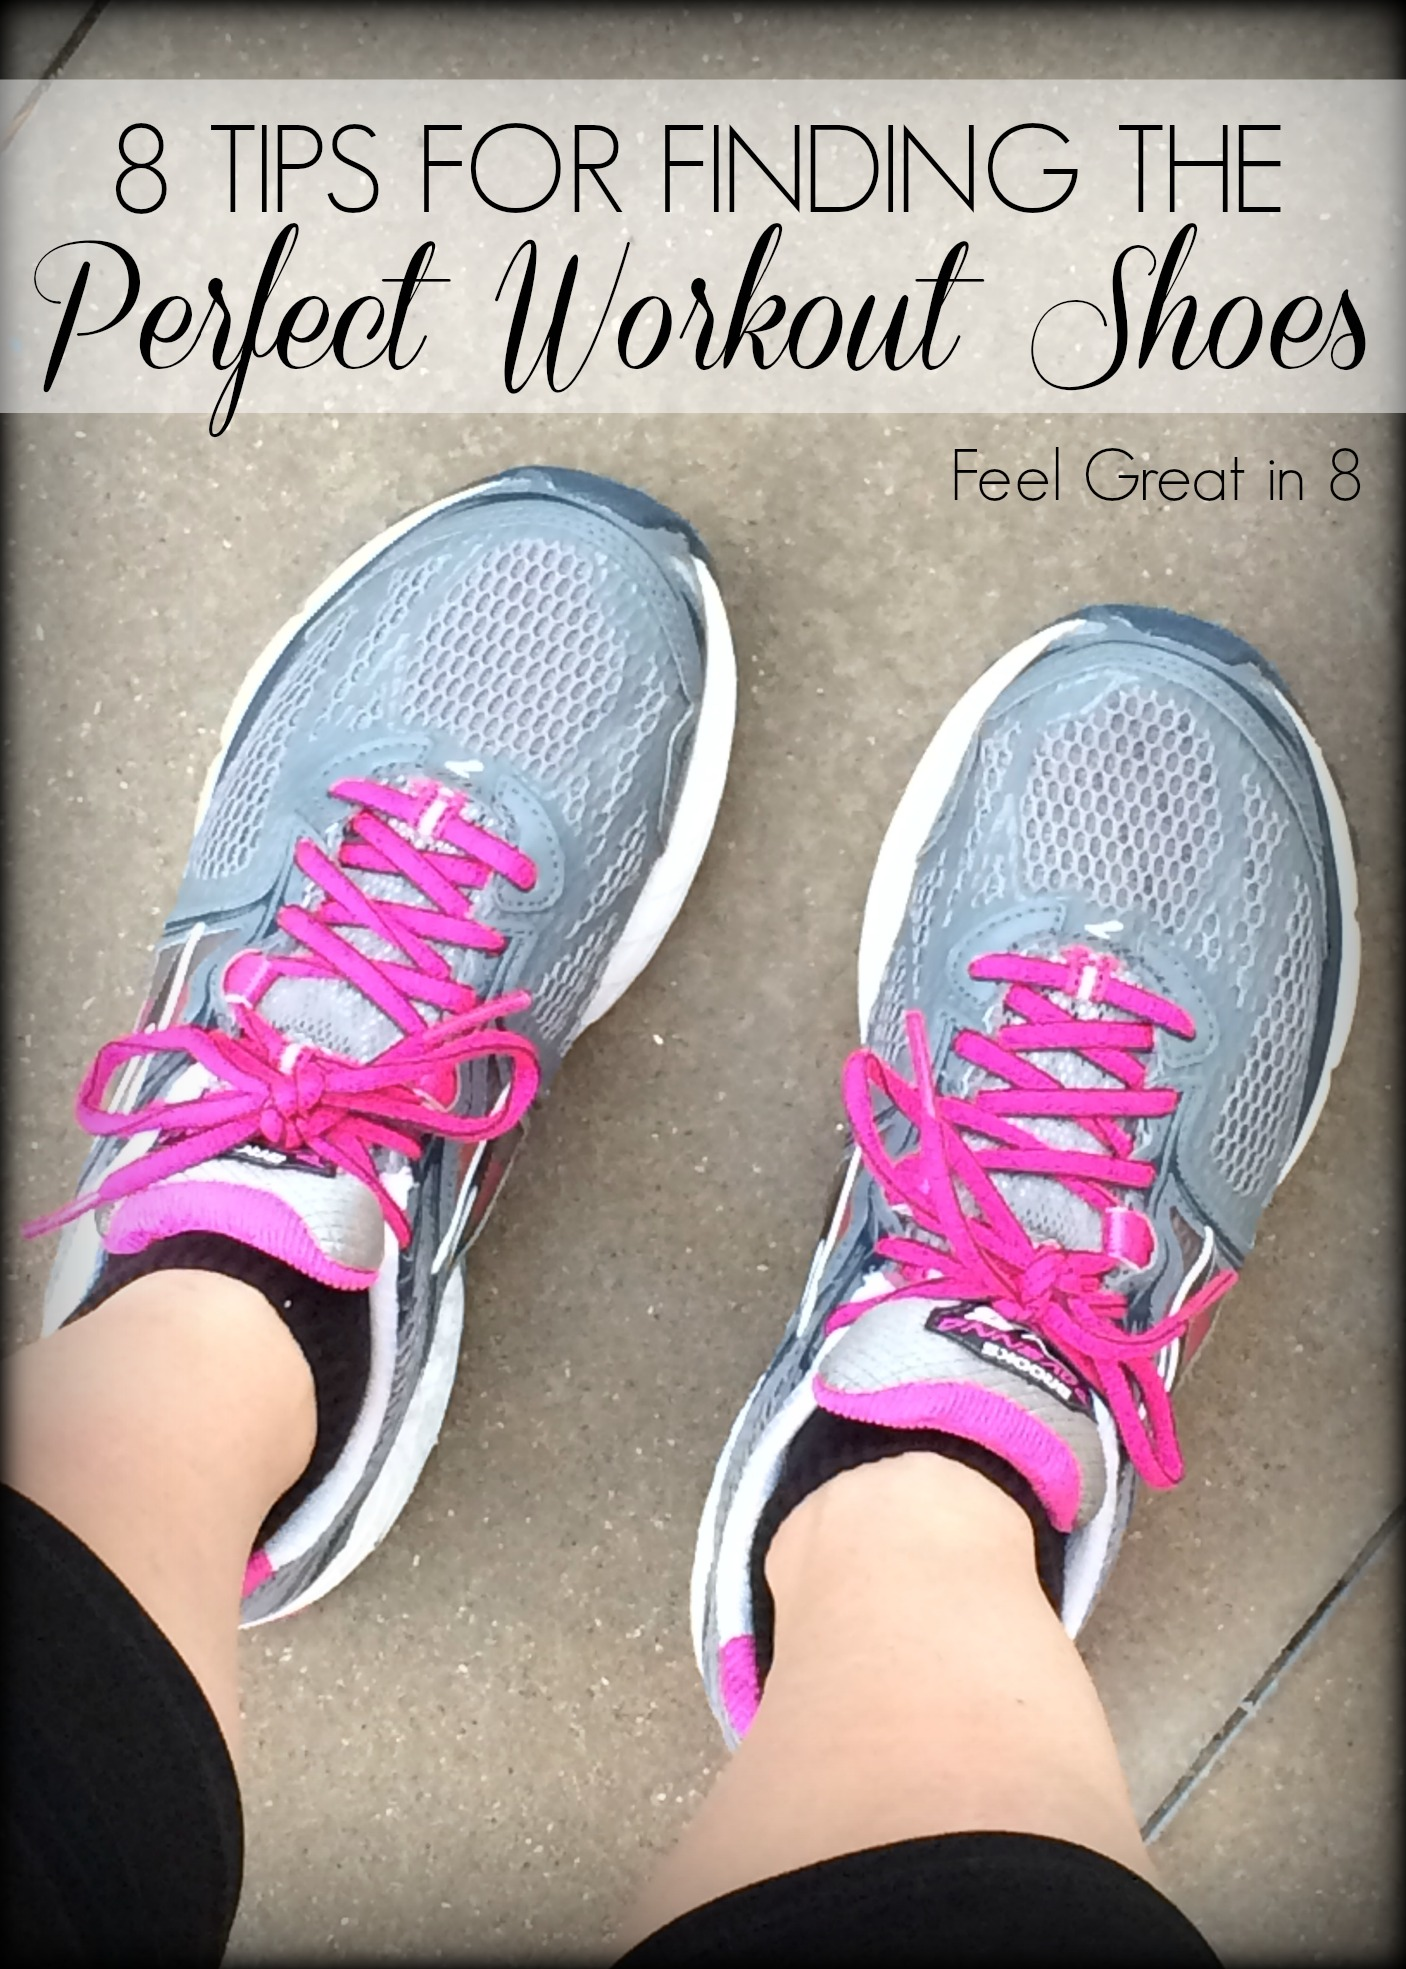 8 Tips for Finding Your Perfect Workout Shoes - great tips for finding the best shoes for running or any exercise! Feel Great in 8 #fitness #running #shoes